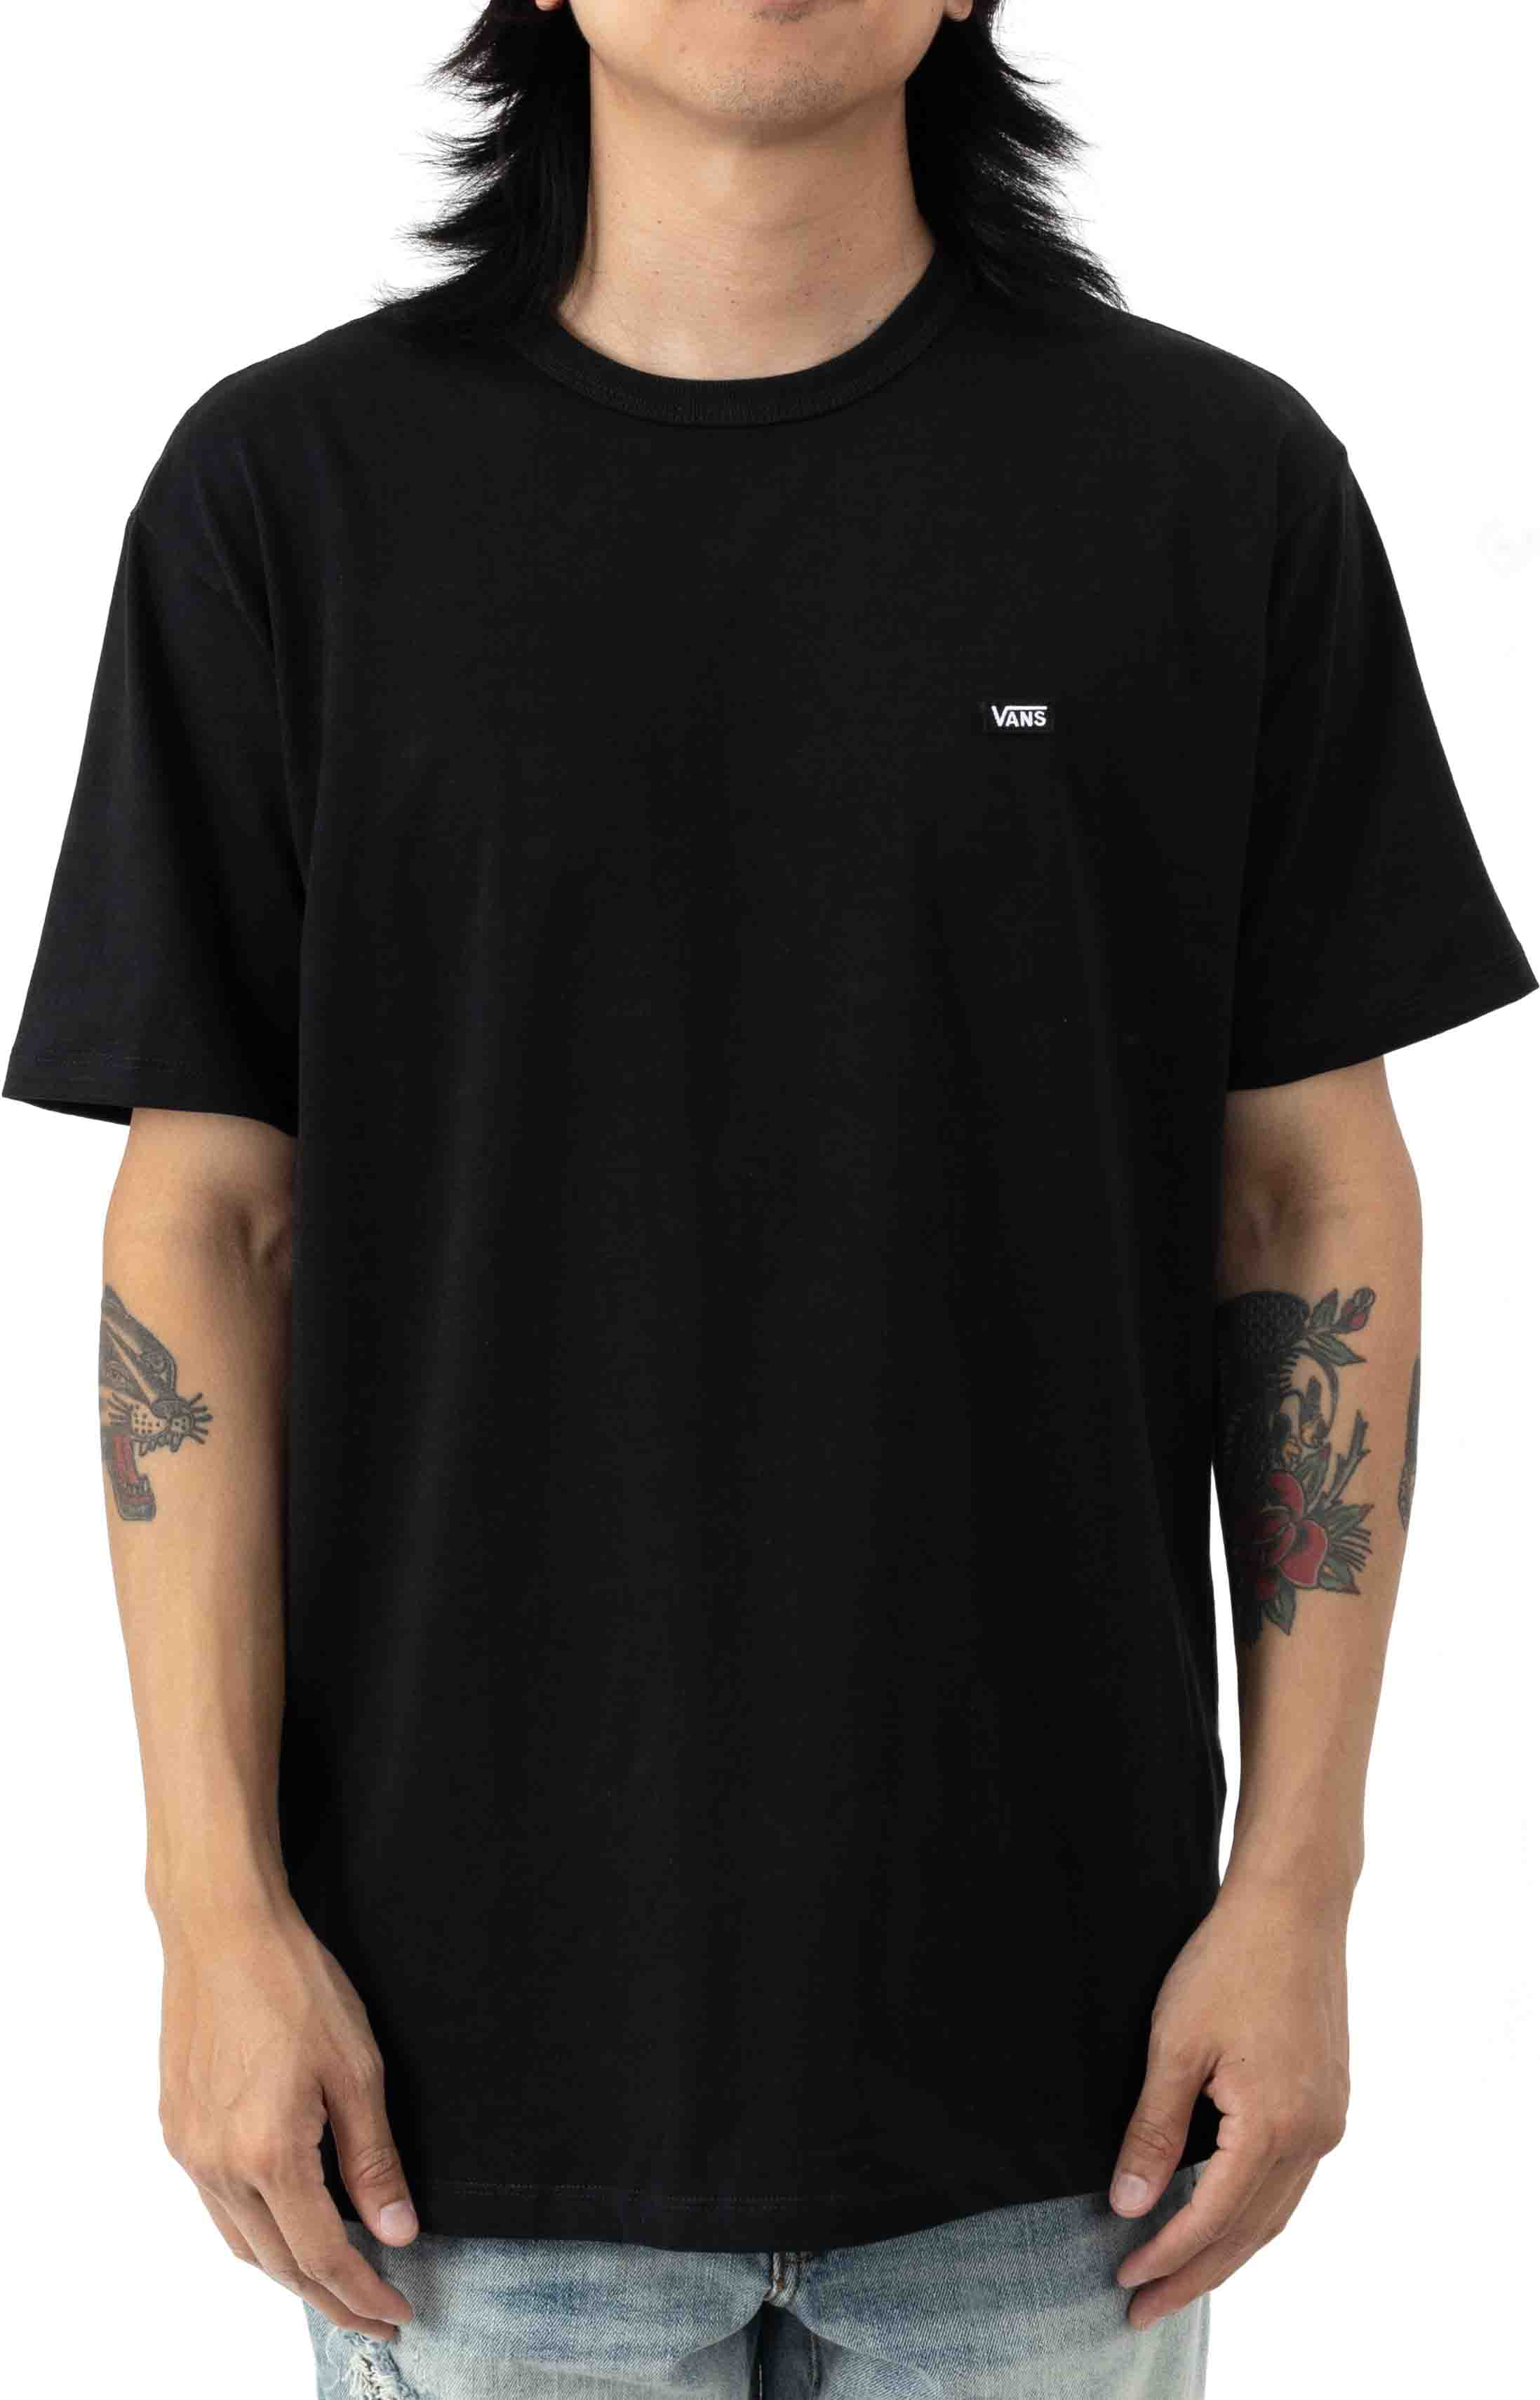 Off The Wall Classic T-Shirt - Black